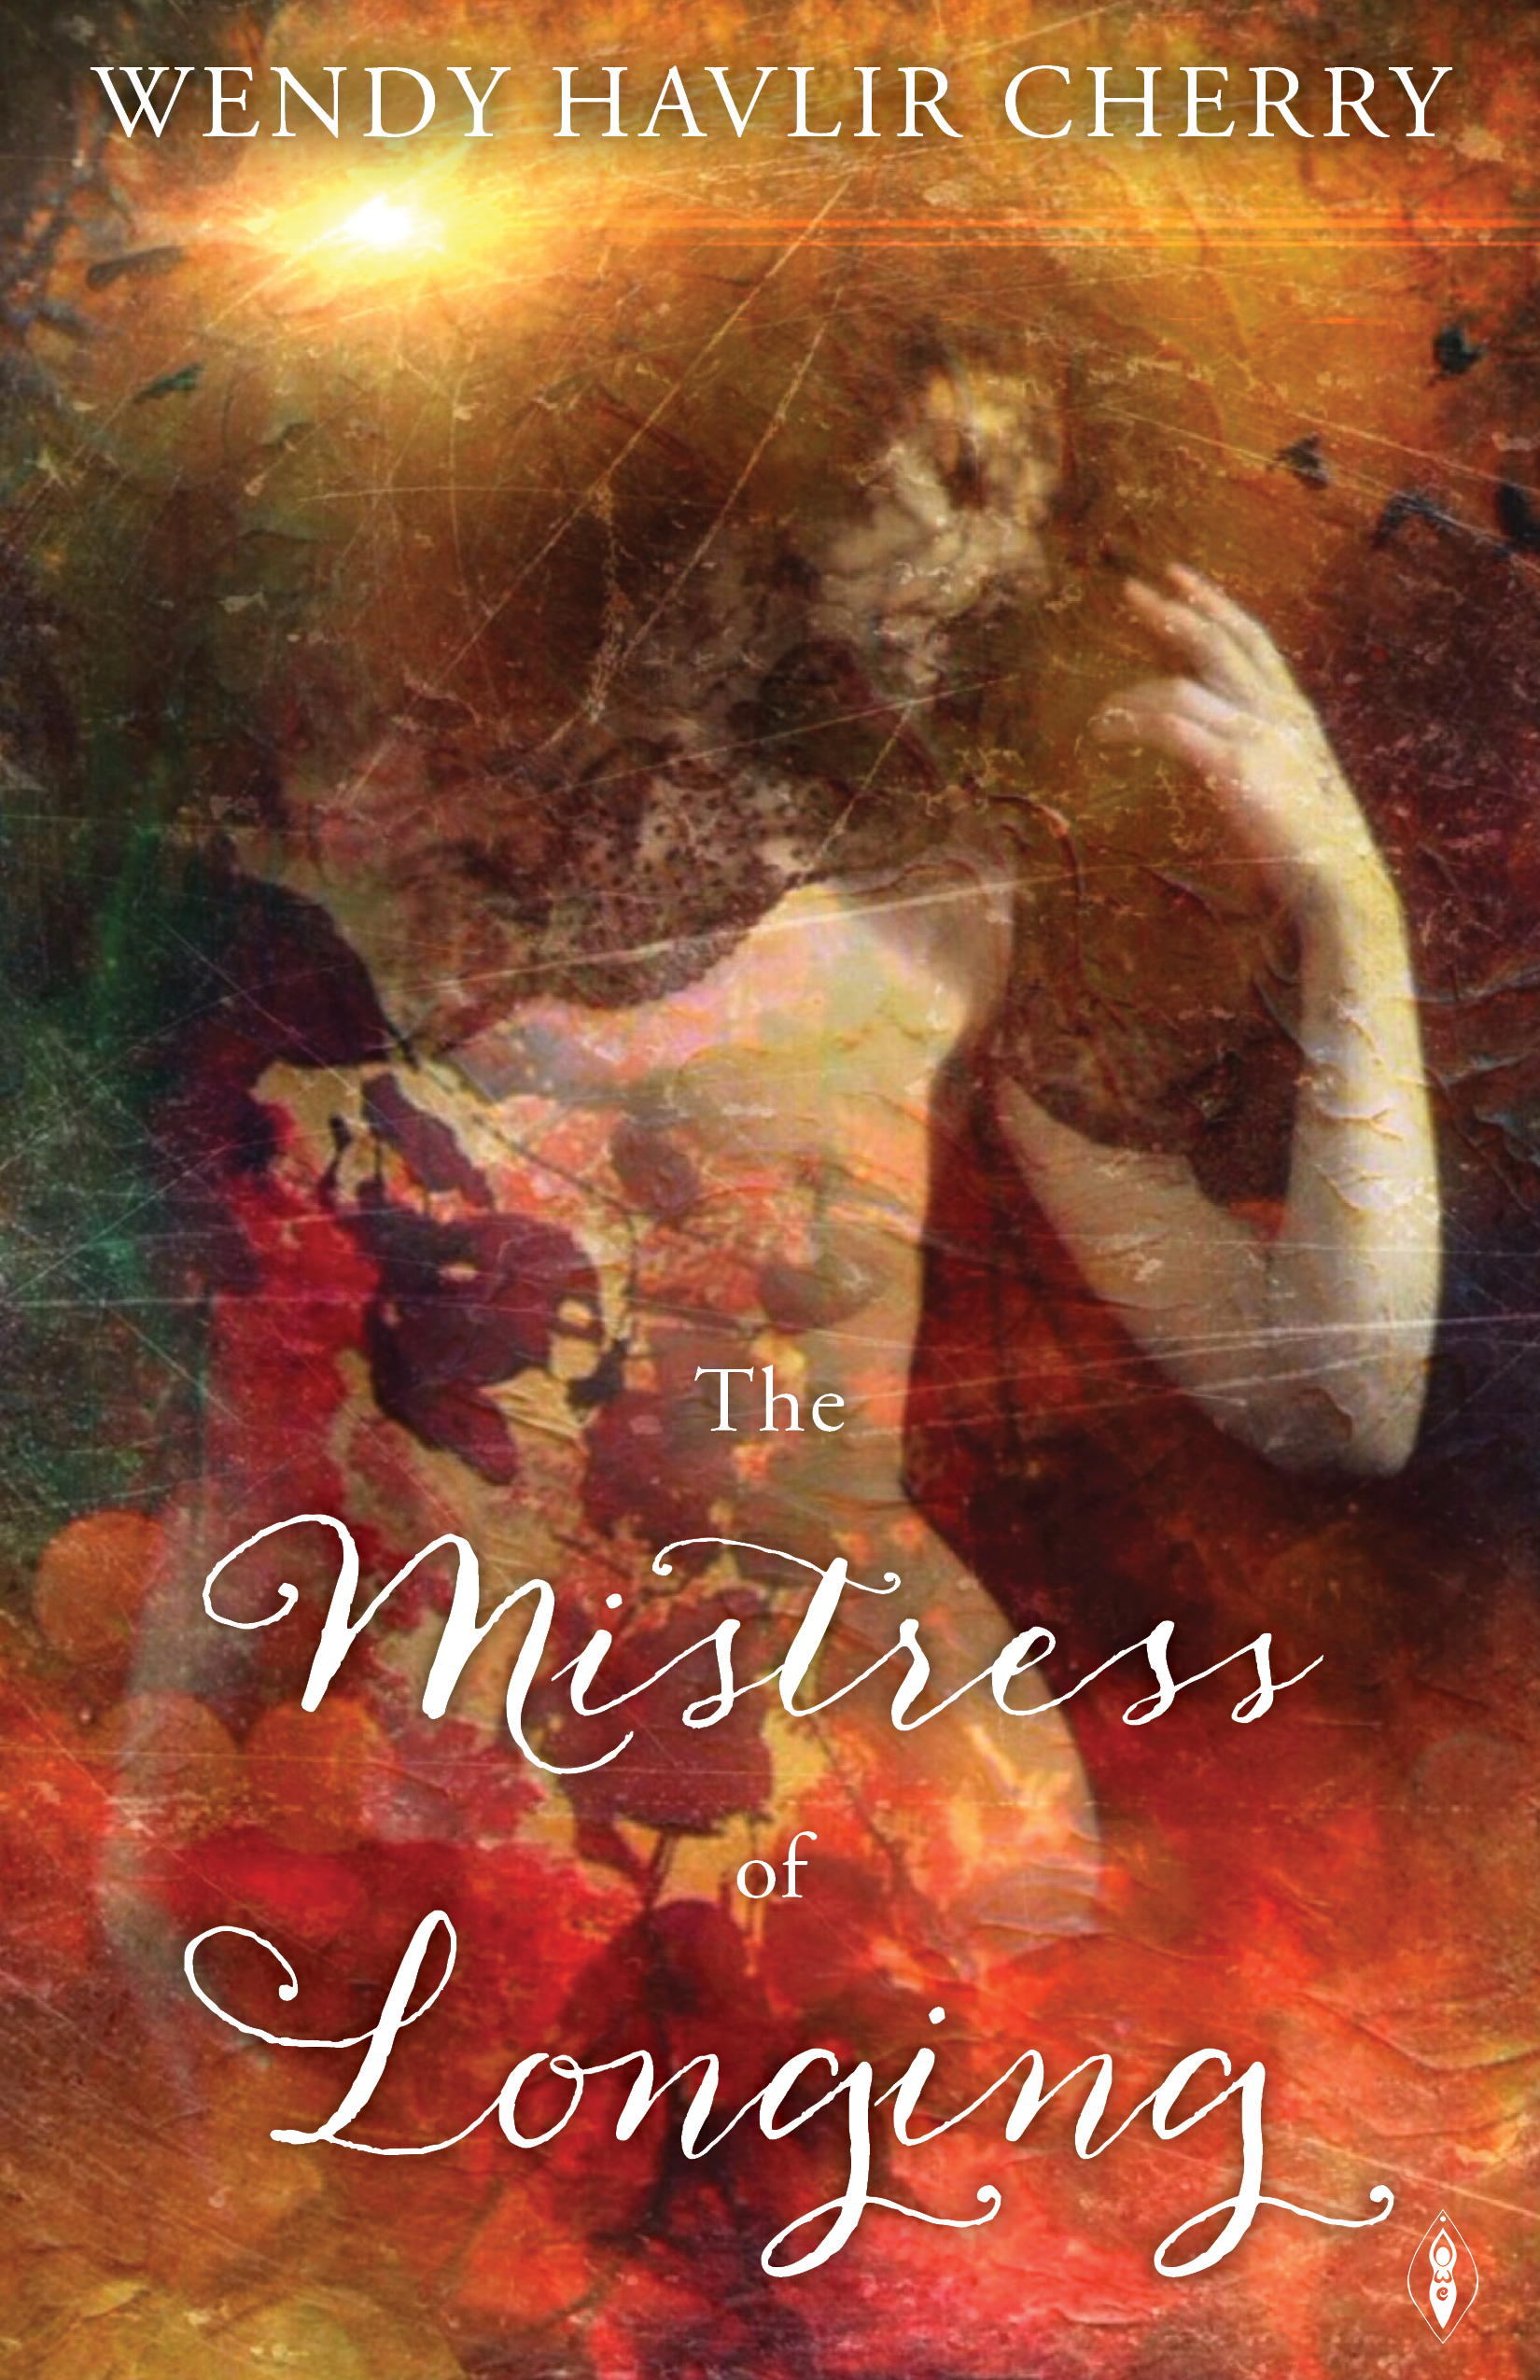 The Mistress of Longing, by Wendy Havlir Cherry